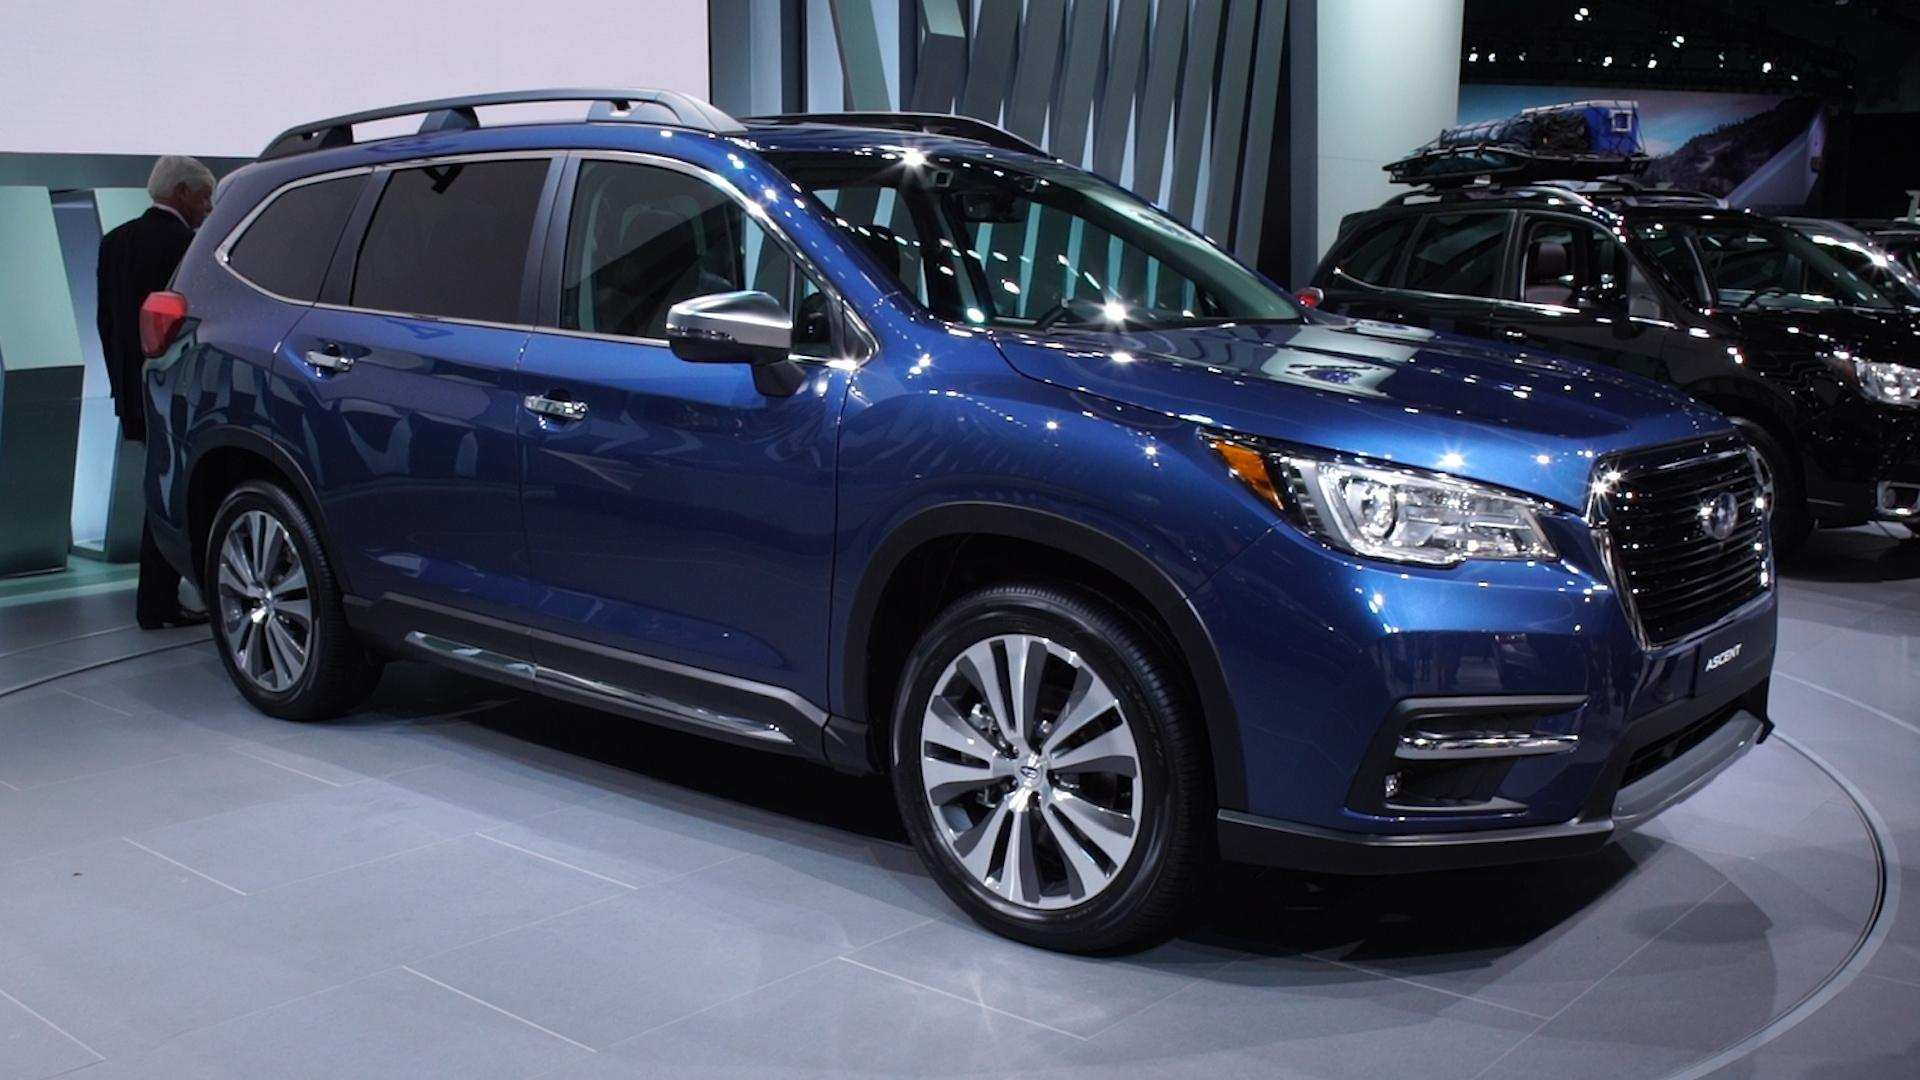 81 The Best 2019 Subaru Ascent Video Ratings